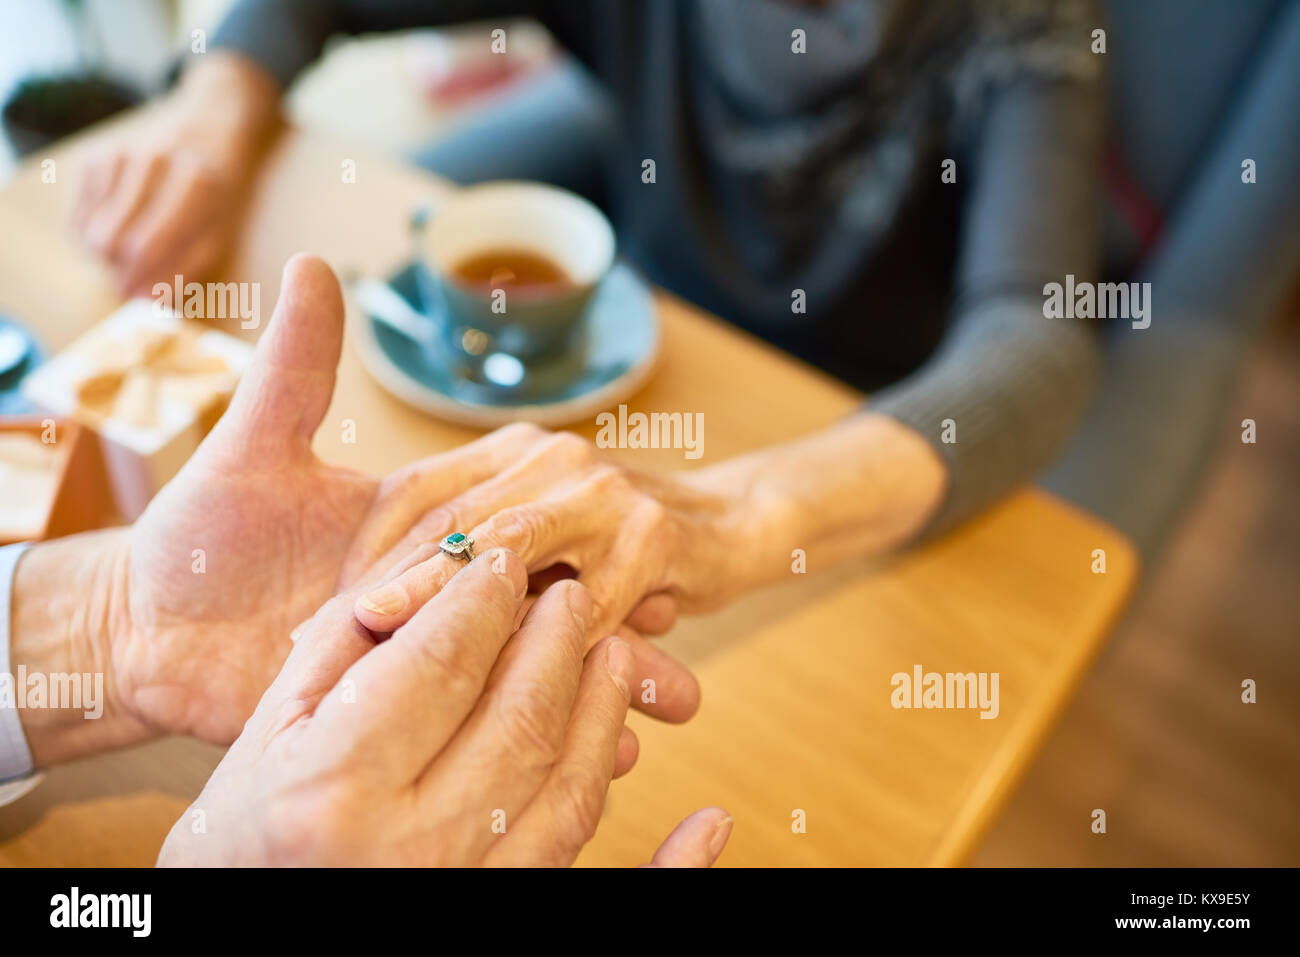 Making Marriage Proposal - Stock Image